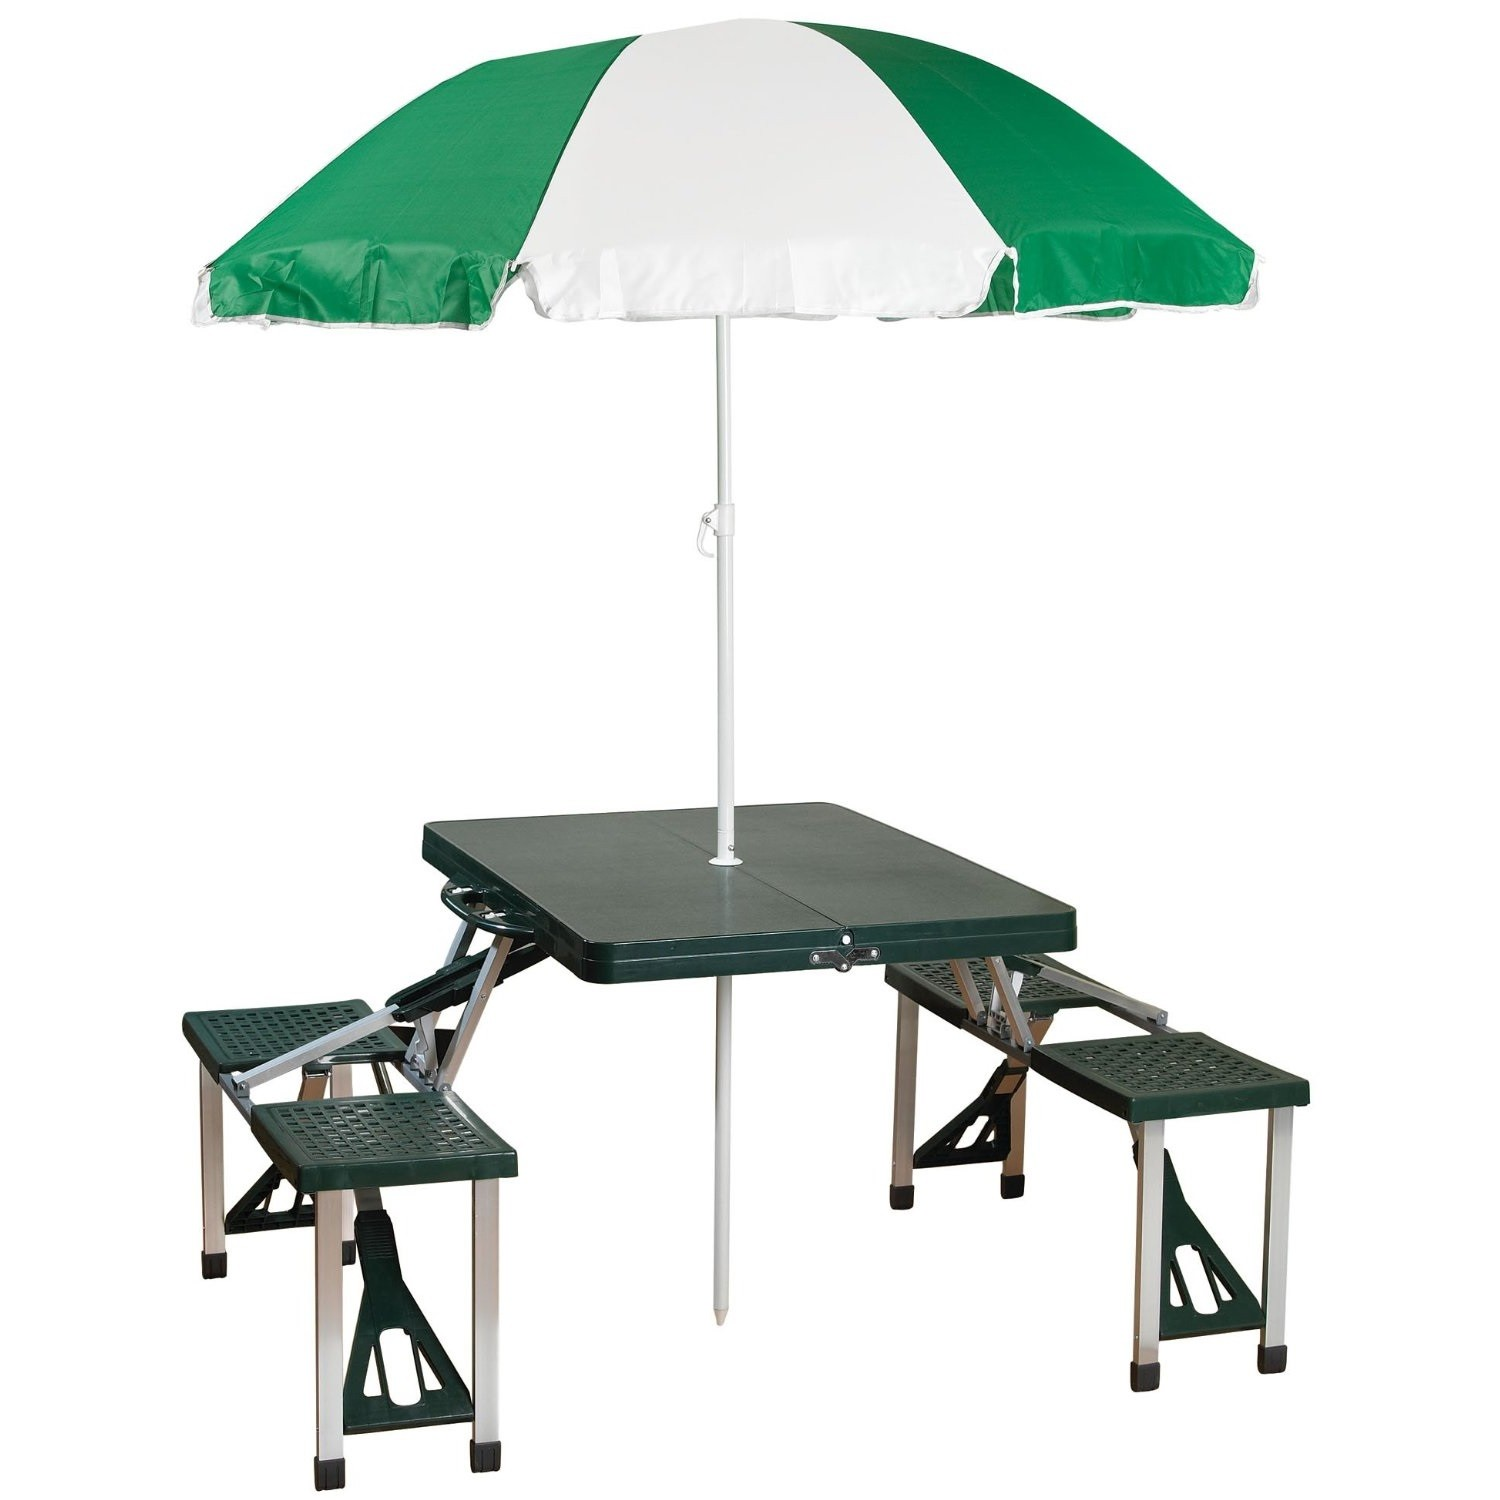 Fabulous Details About Fold Up Portable Carry On Outdoor Suitcase Picnic Table 4 Seats Umbrella Yard Pdpeps Interior Chair Design Pdpepsorg